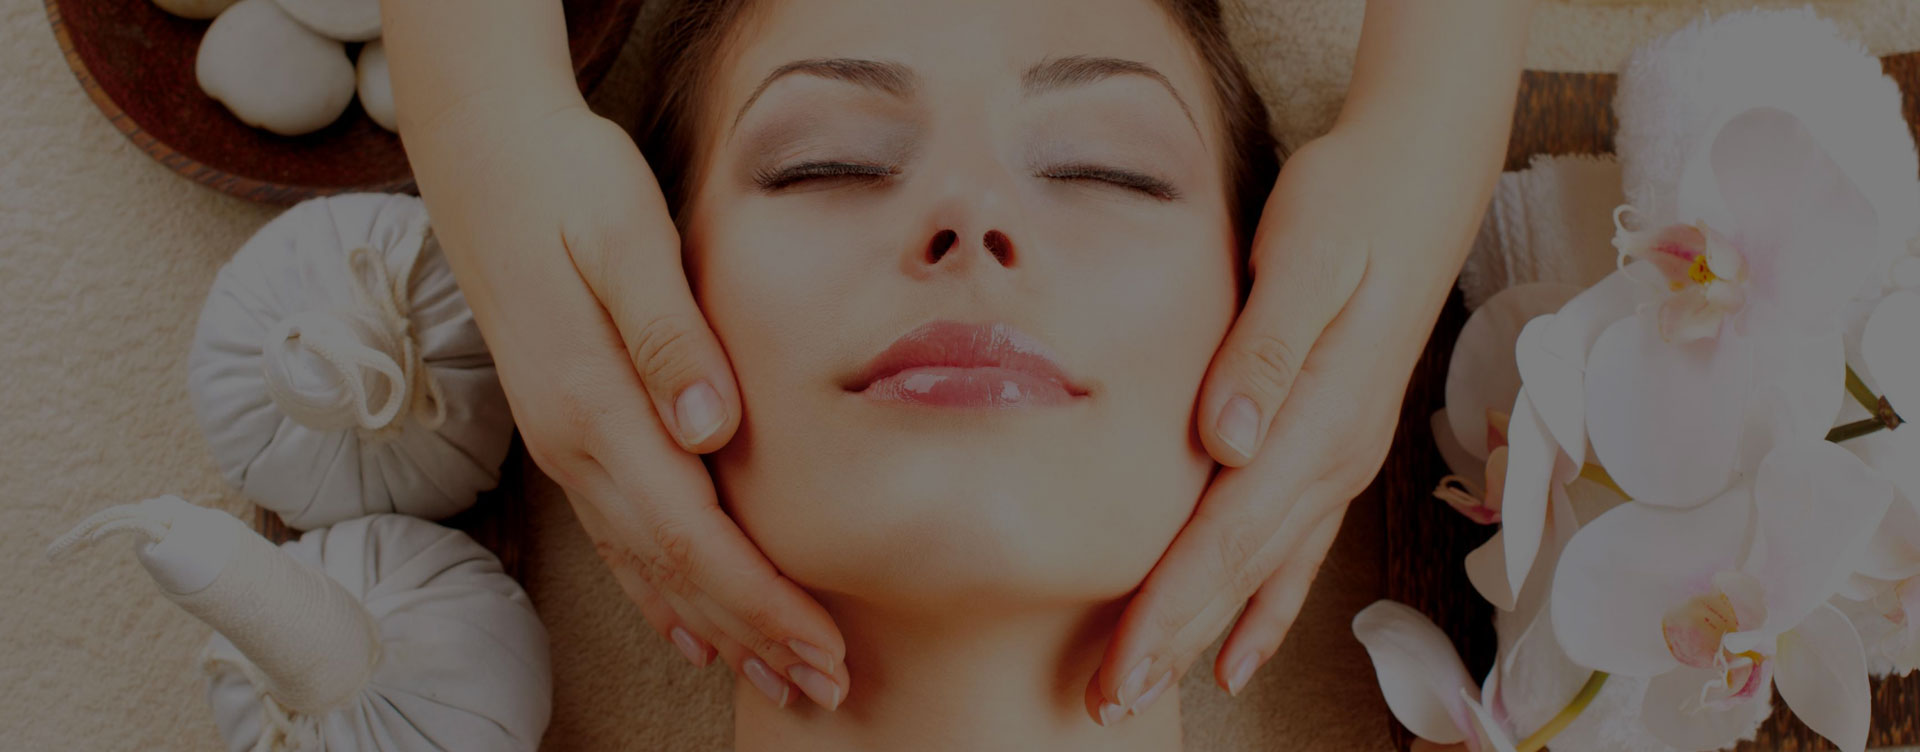 massage relasant a paris